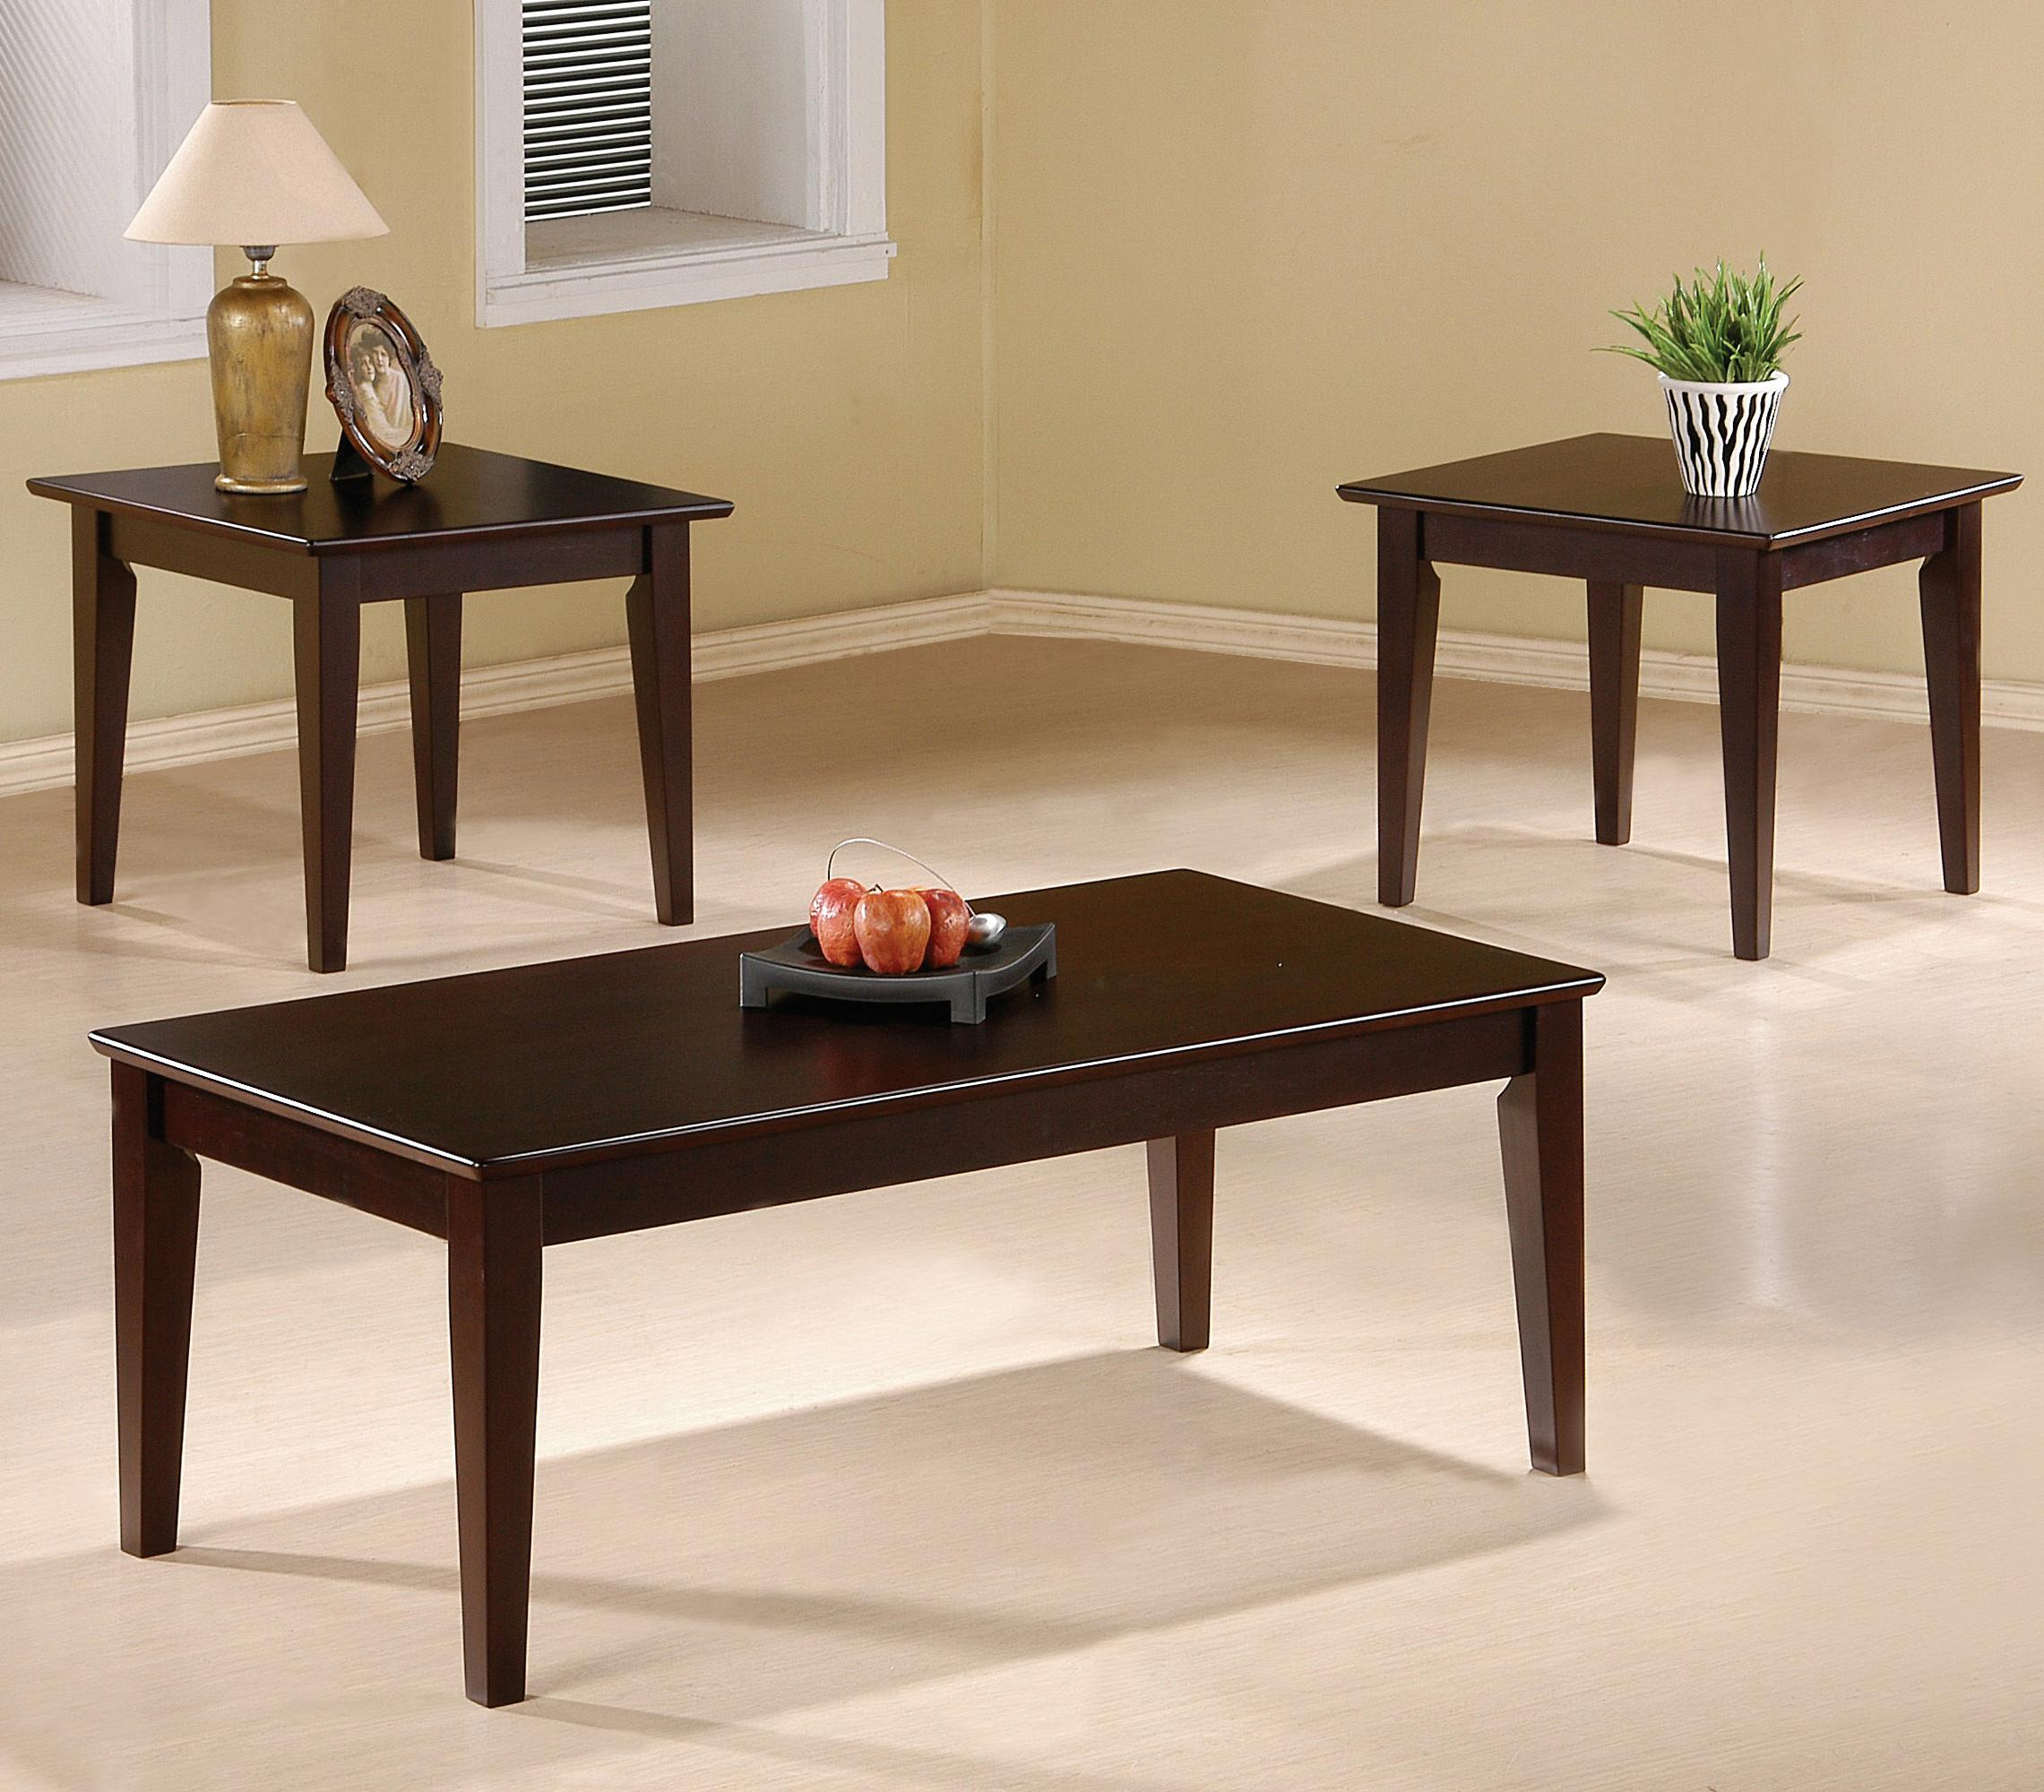 Occasional Table Sets 3 Piece Table Set by Coaster at Furniture Superstore - Rochester, MN